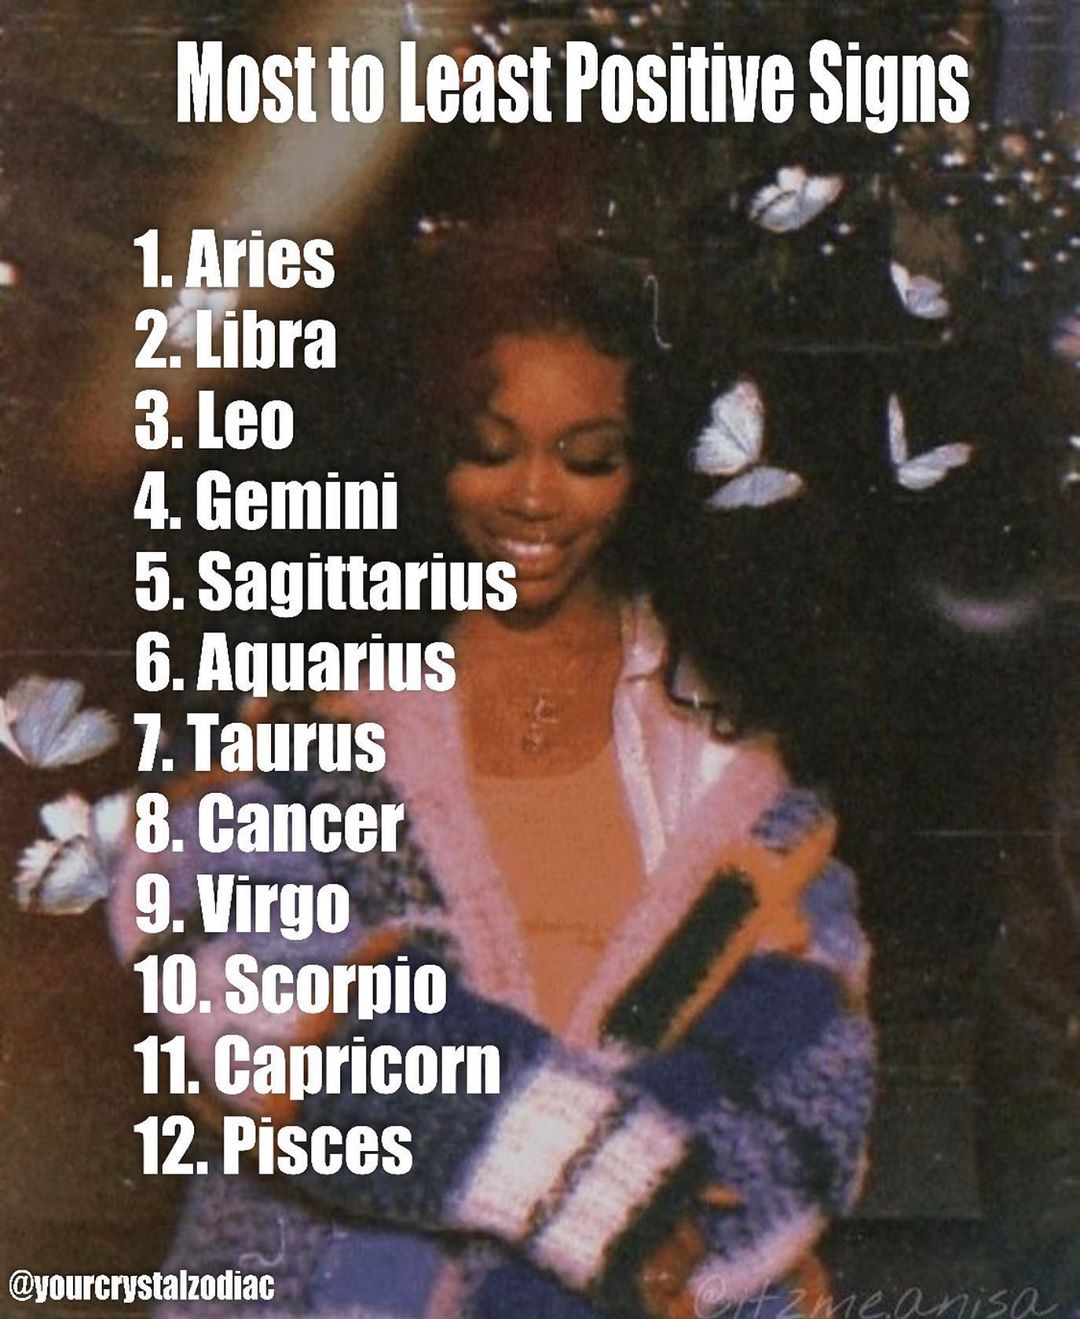 comment your sign below